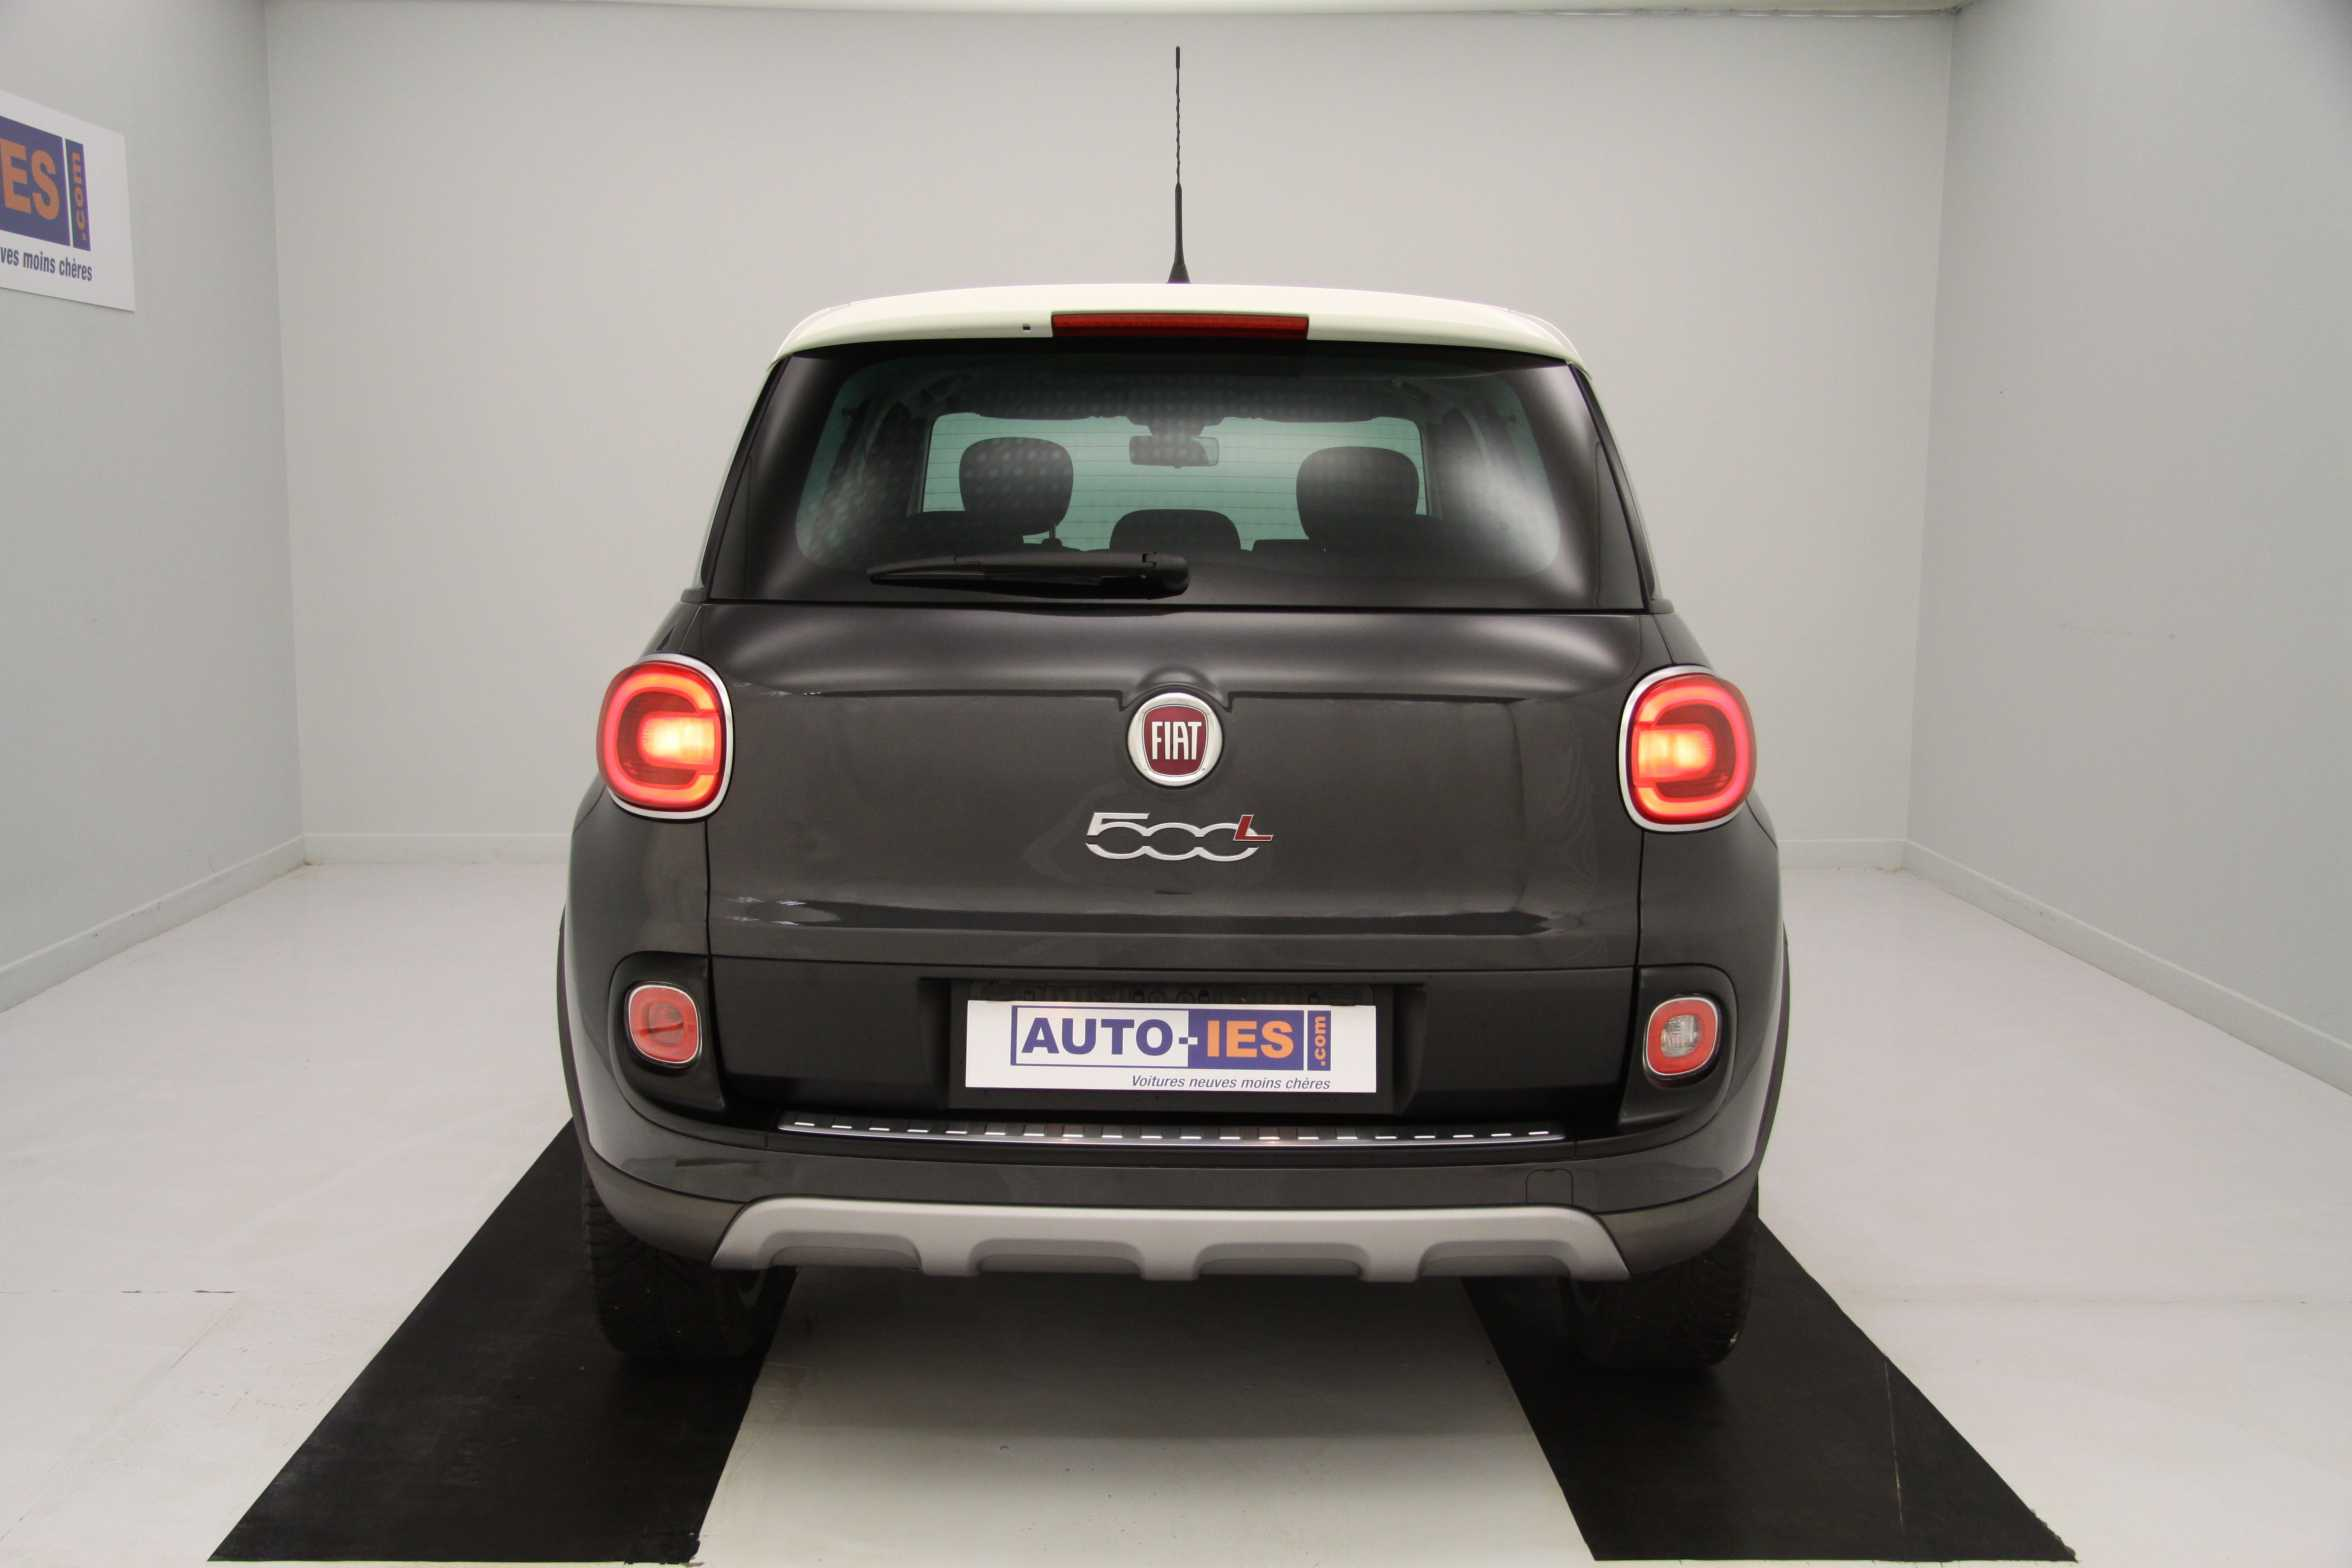 fiat 500 l 1 6 multijet 16v 105 ch s s trekking beige moda gris gelato blanc avec options 17. Black Bedroom Furniture Sets. Home Design Ideas